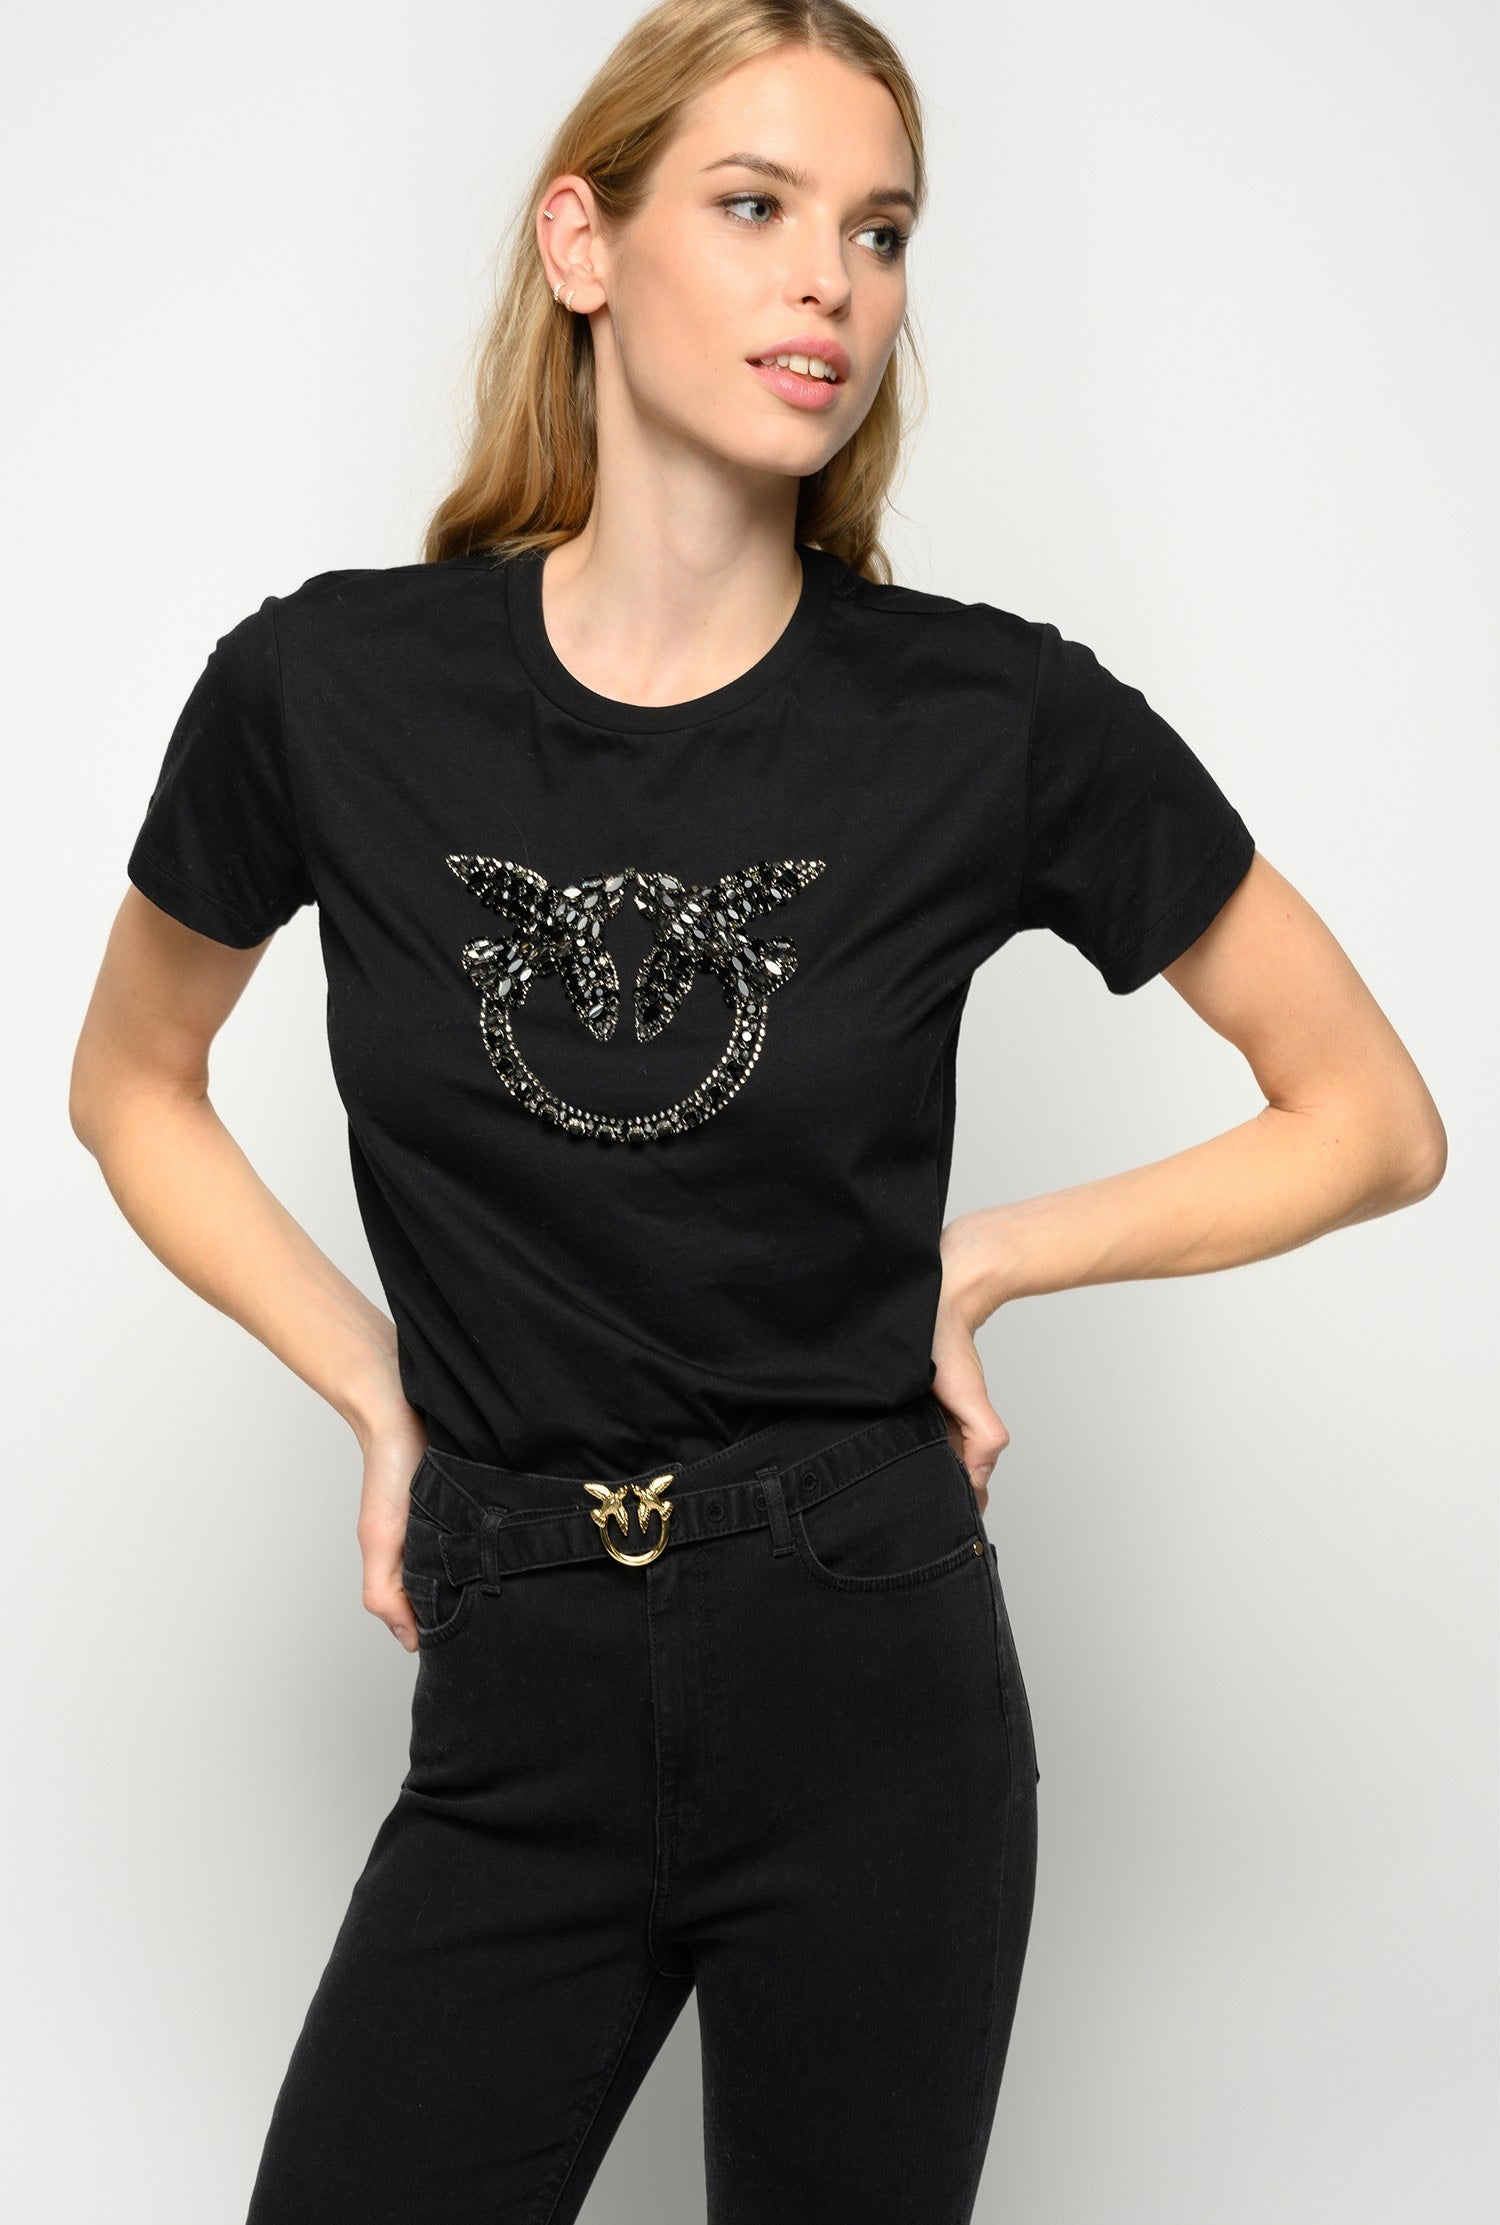 Black Love Birds Embroidery T-Shirt